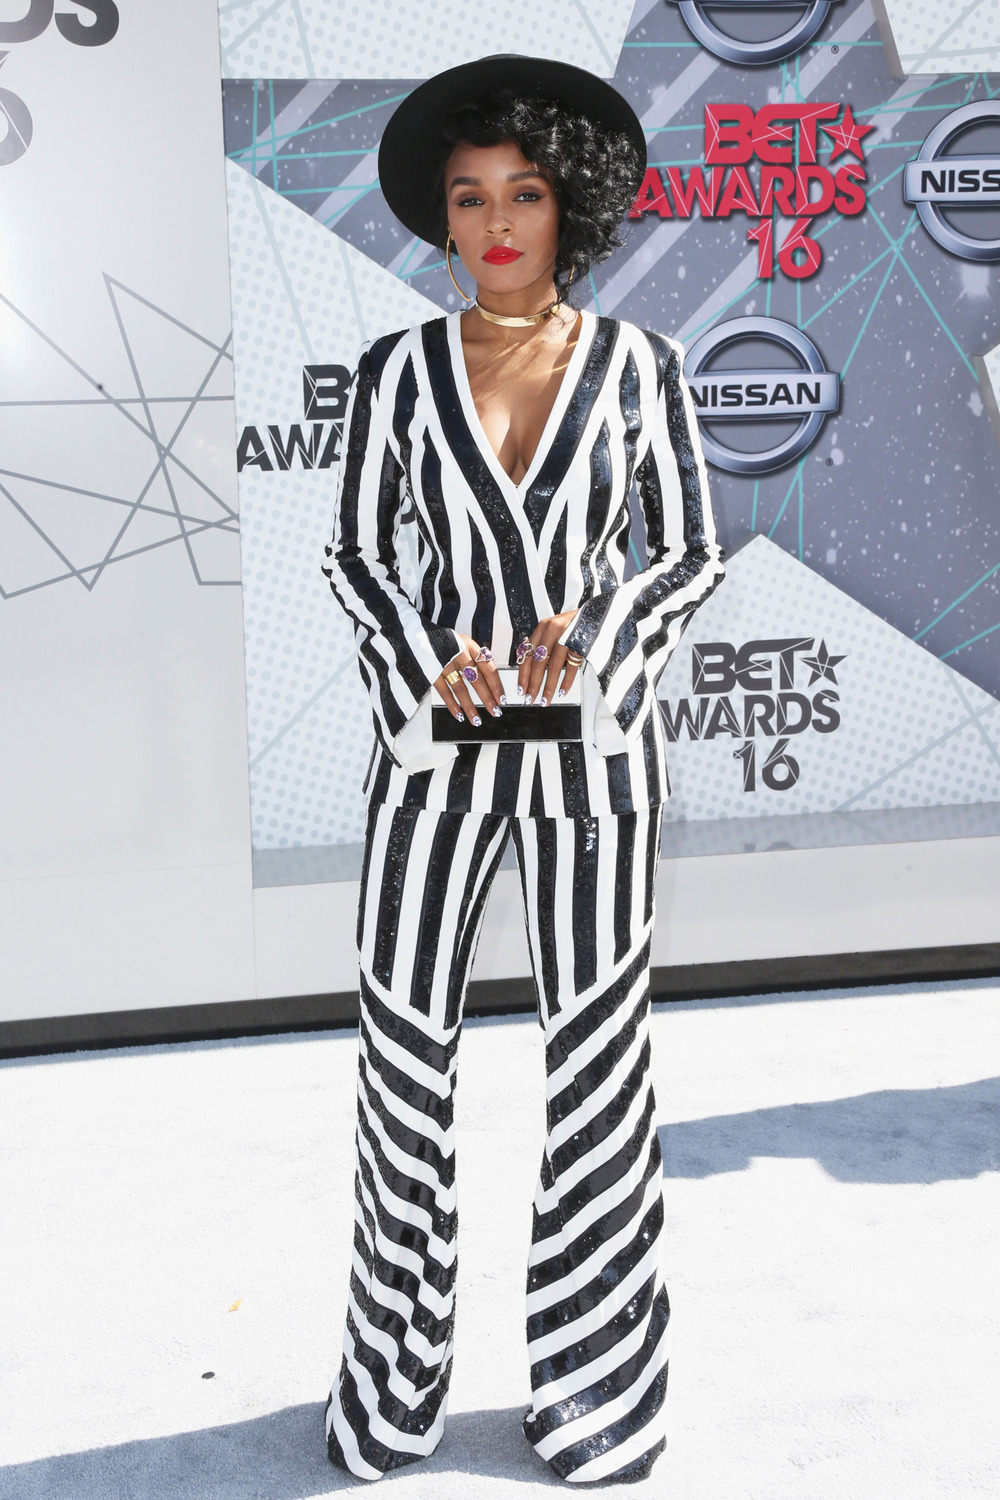 bet-awards-looks-007.nocrop.w1800.h1330.2x.jpg